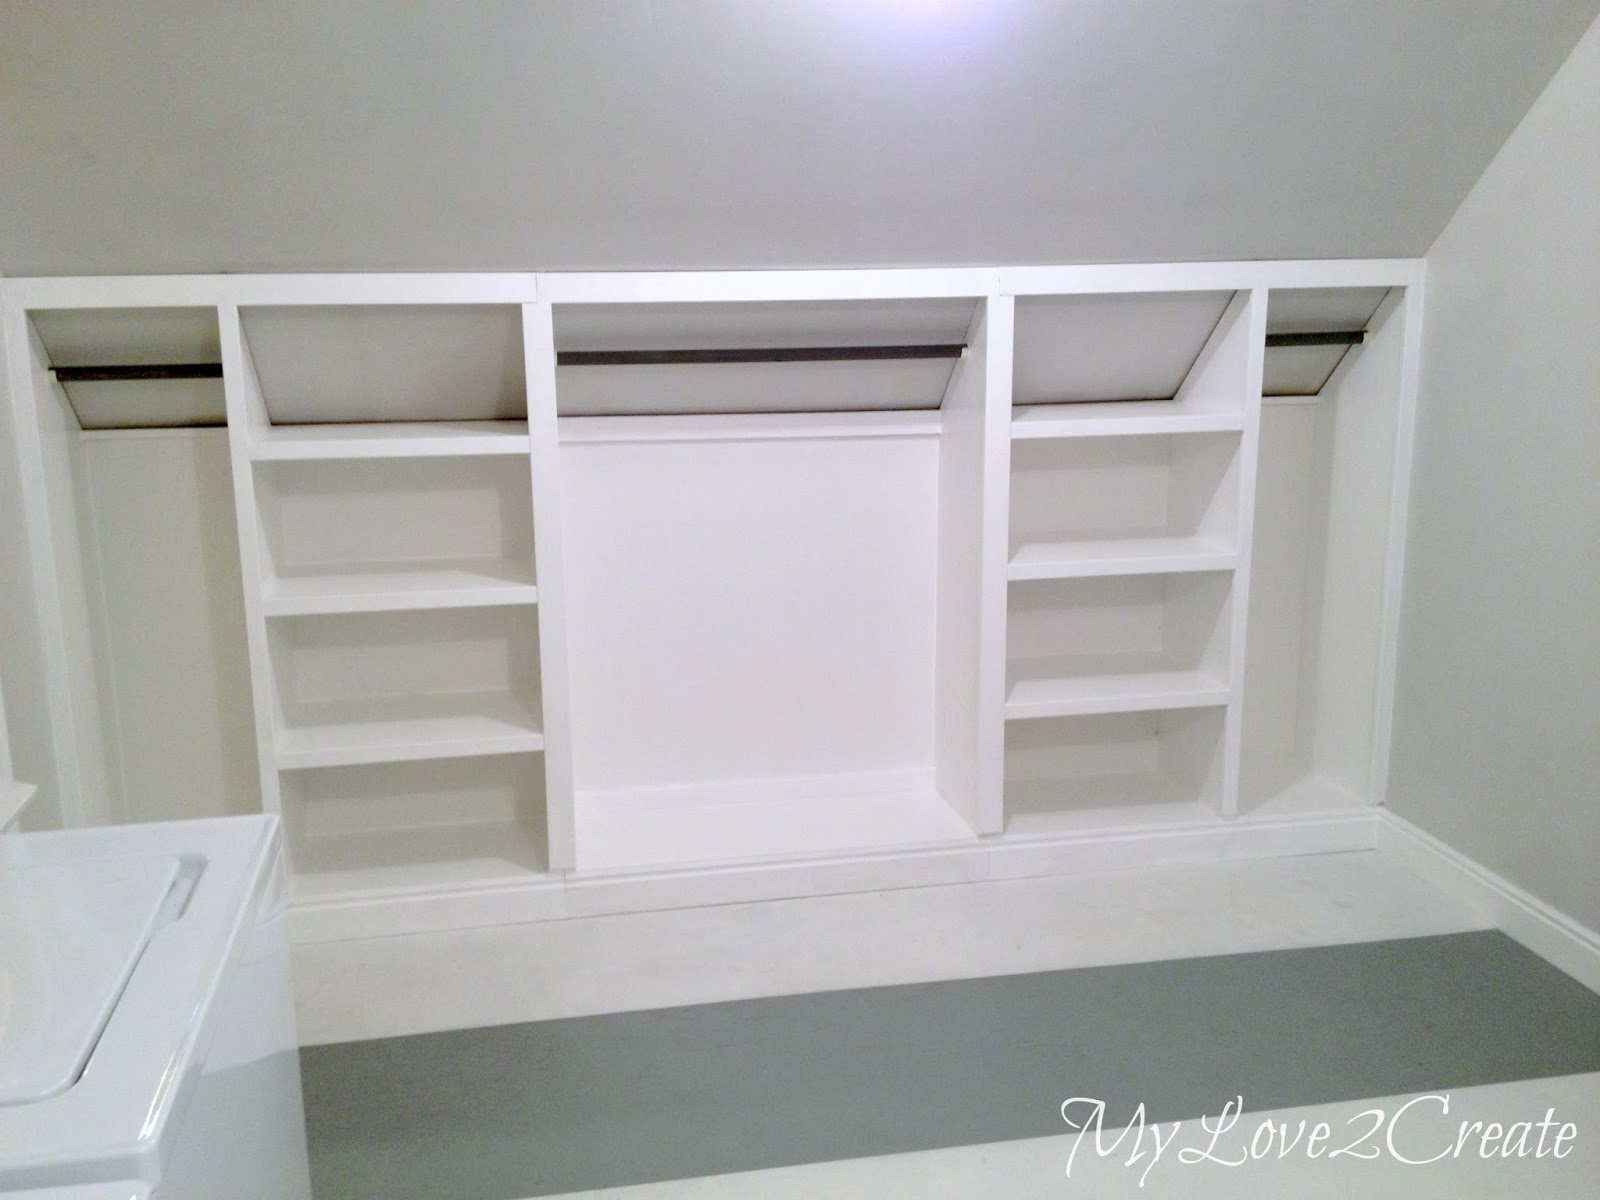 MyLove2Create, Slanted Wall Built-ins